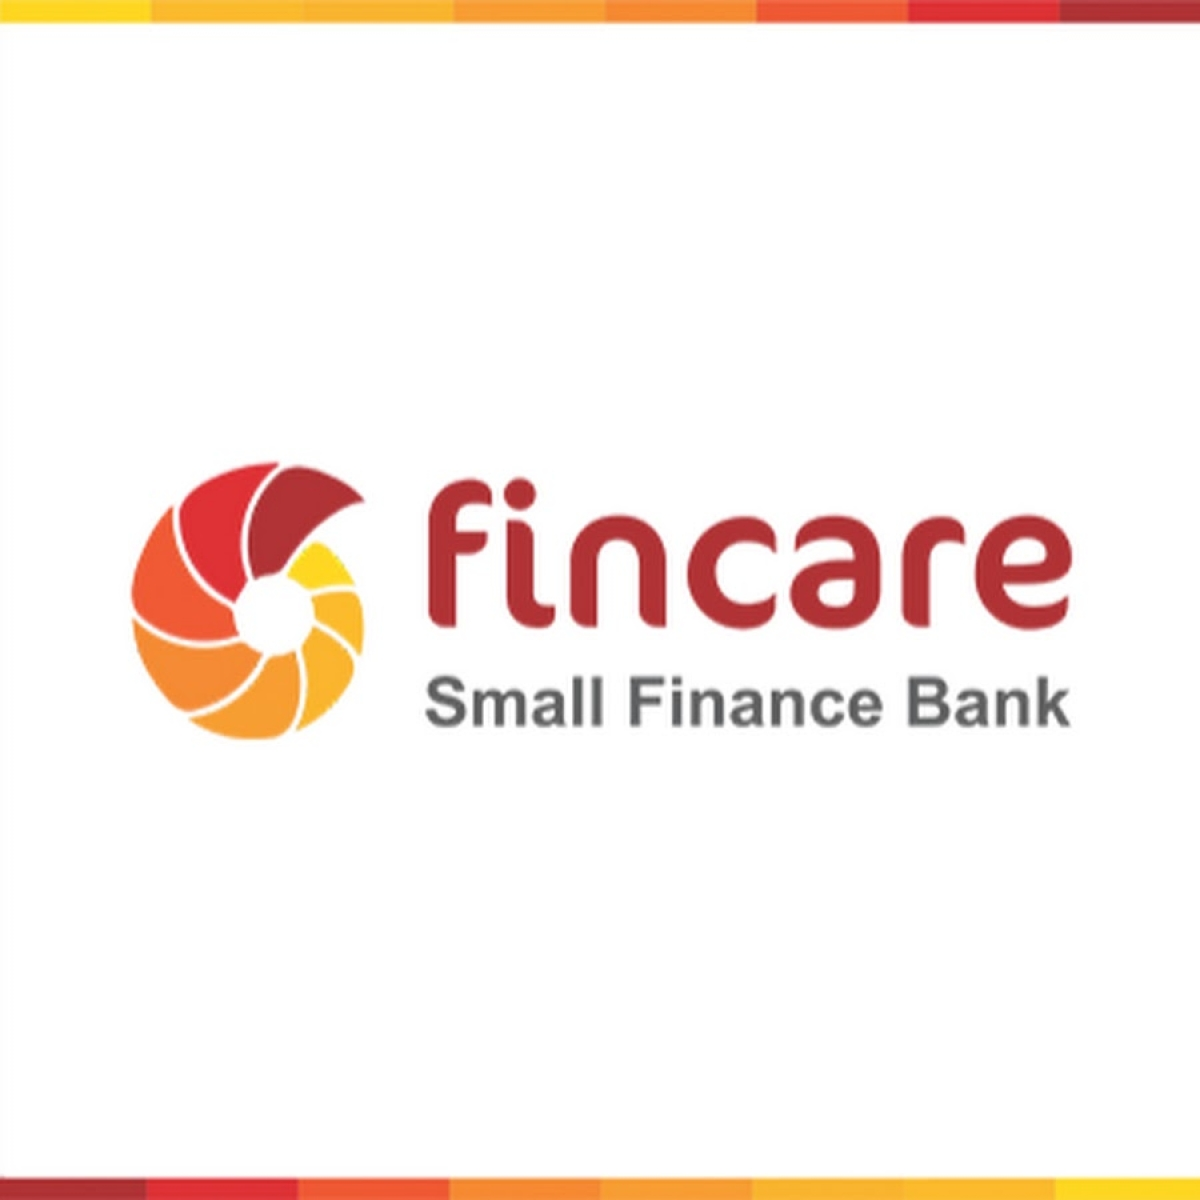 Motilal Oswal PE invests over Rs 185 cr in Fincare Small Finance Bank